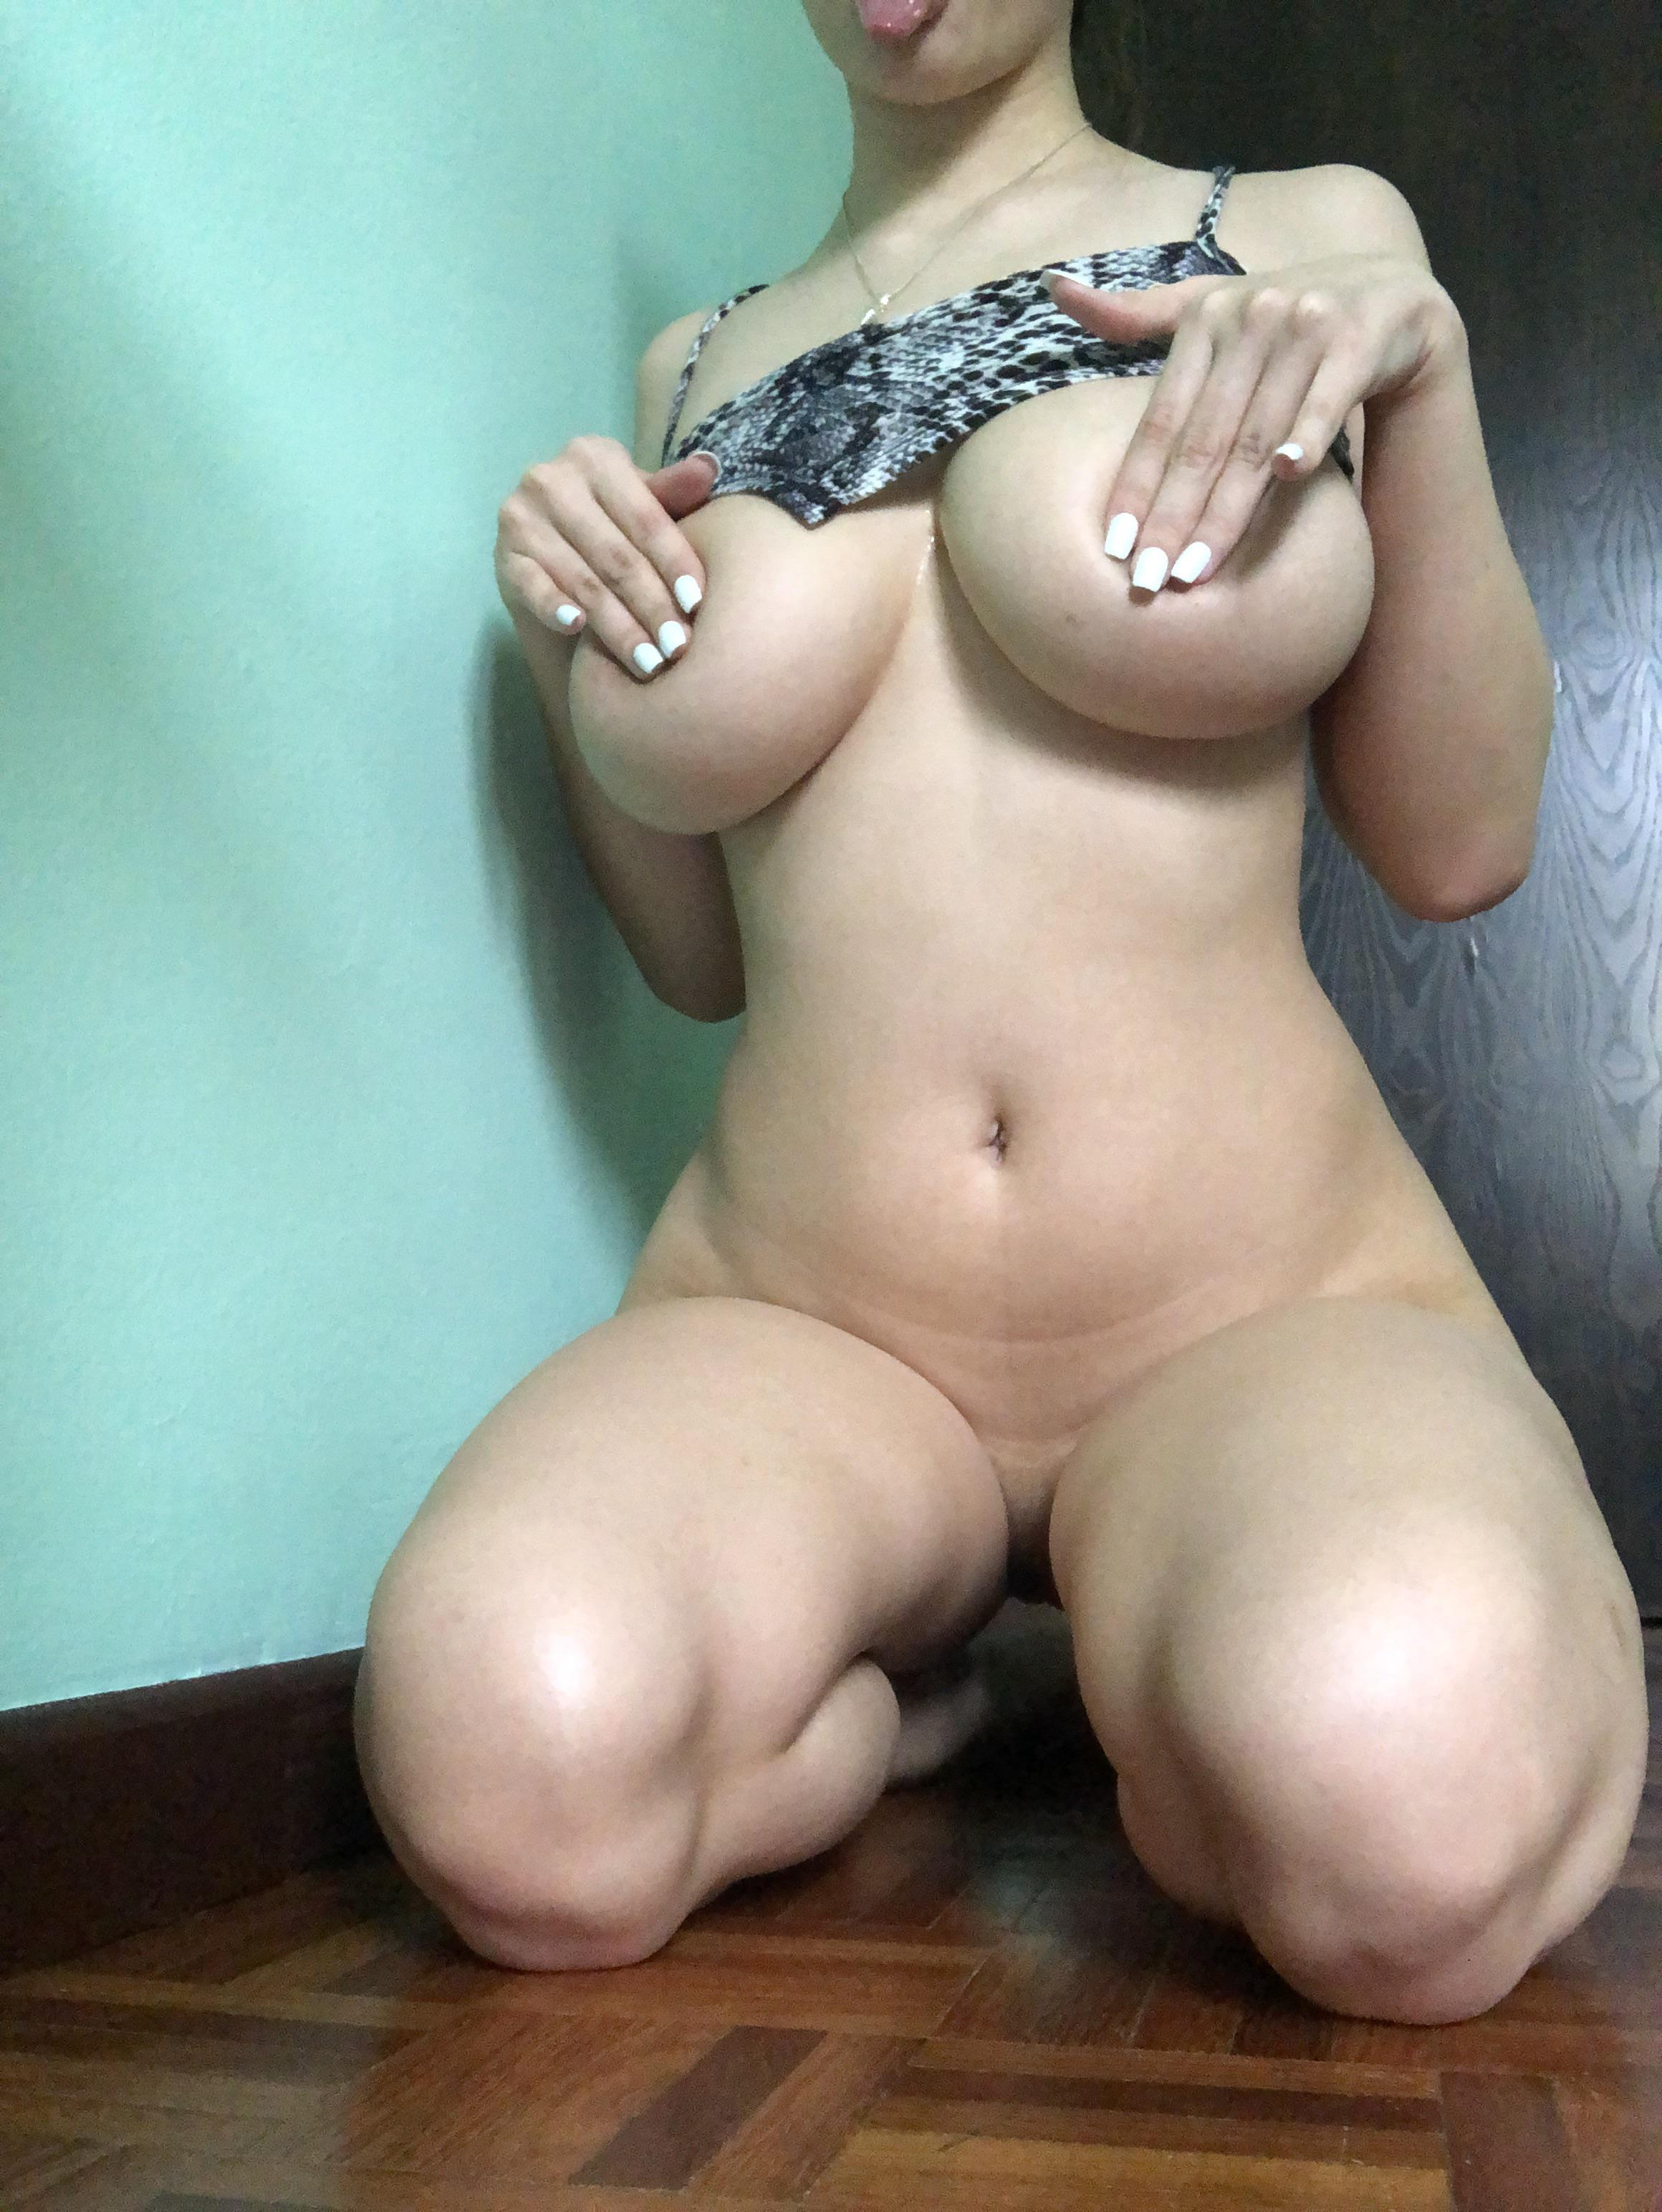 One of our naked asian pics called Will my body satisfy you?